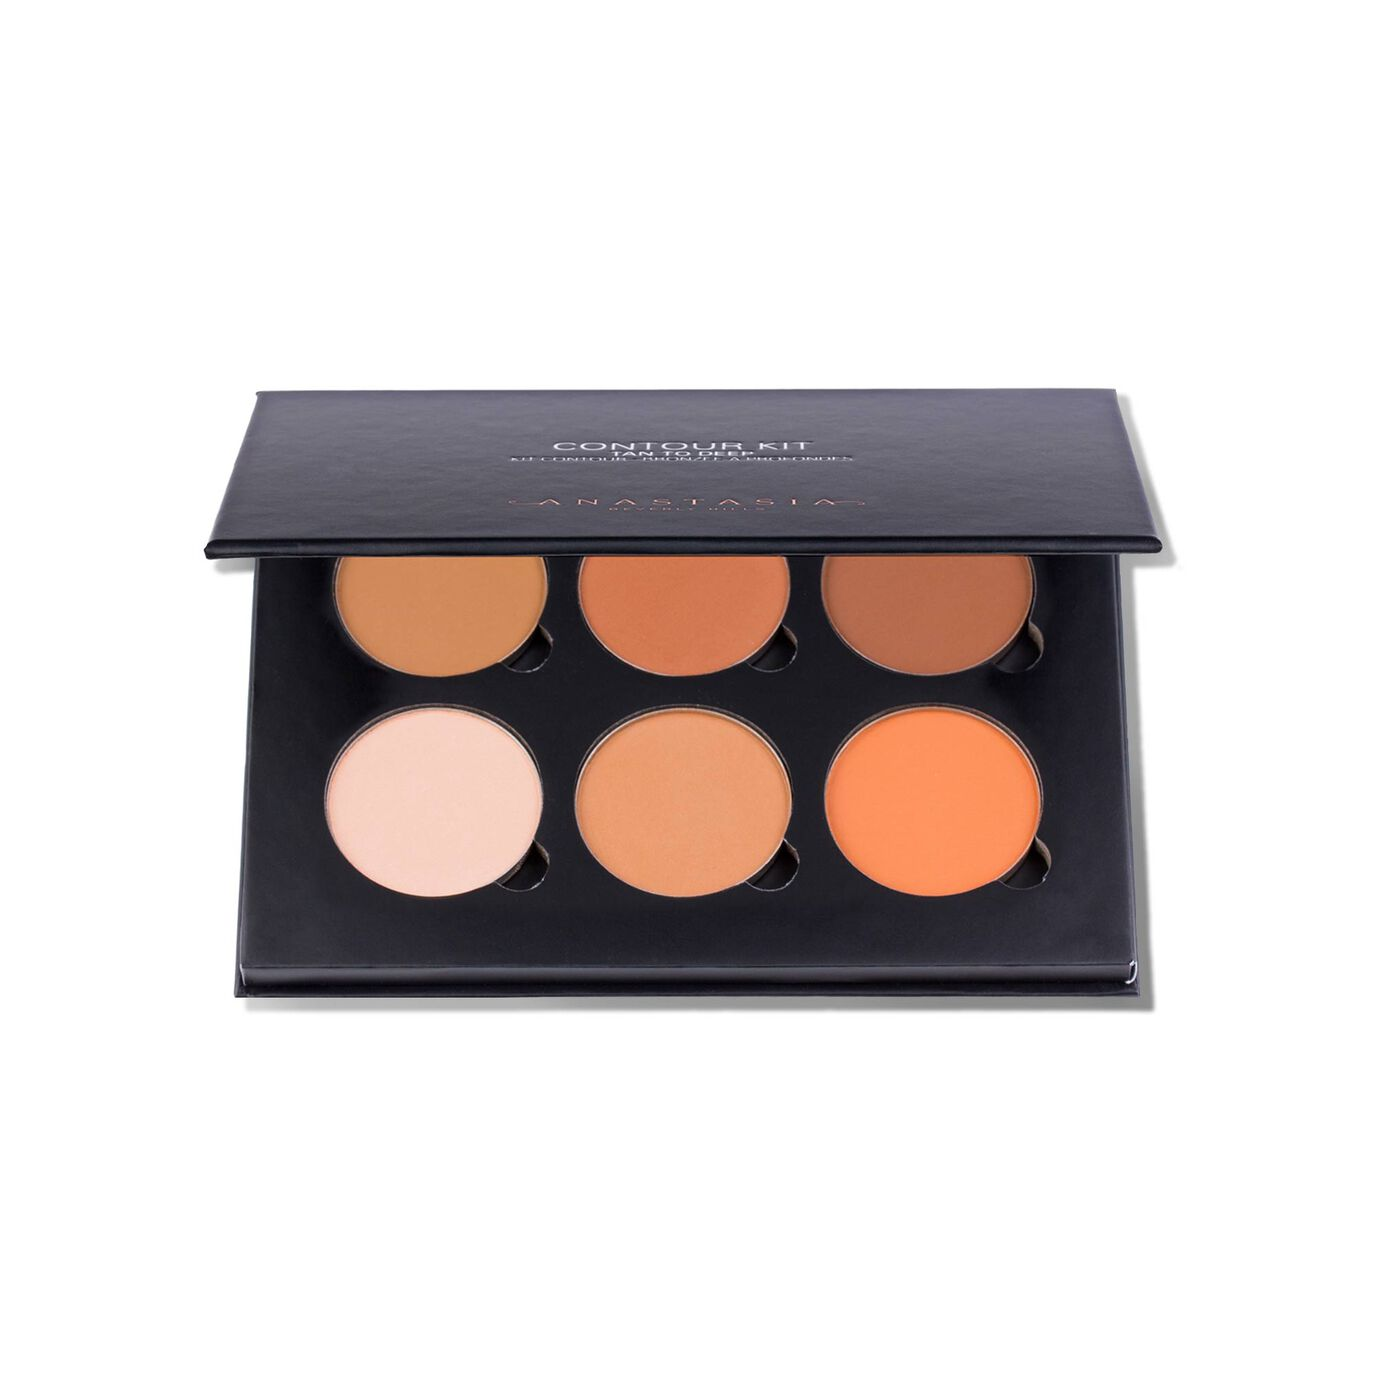 Powder Contour Kit - Tan to Deep